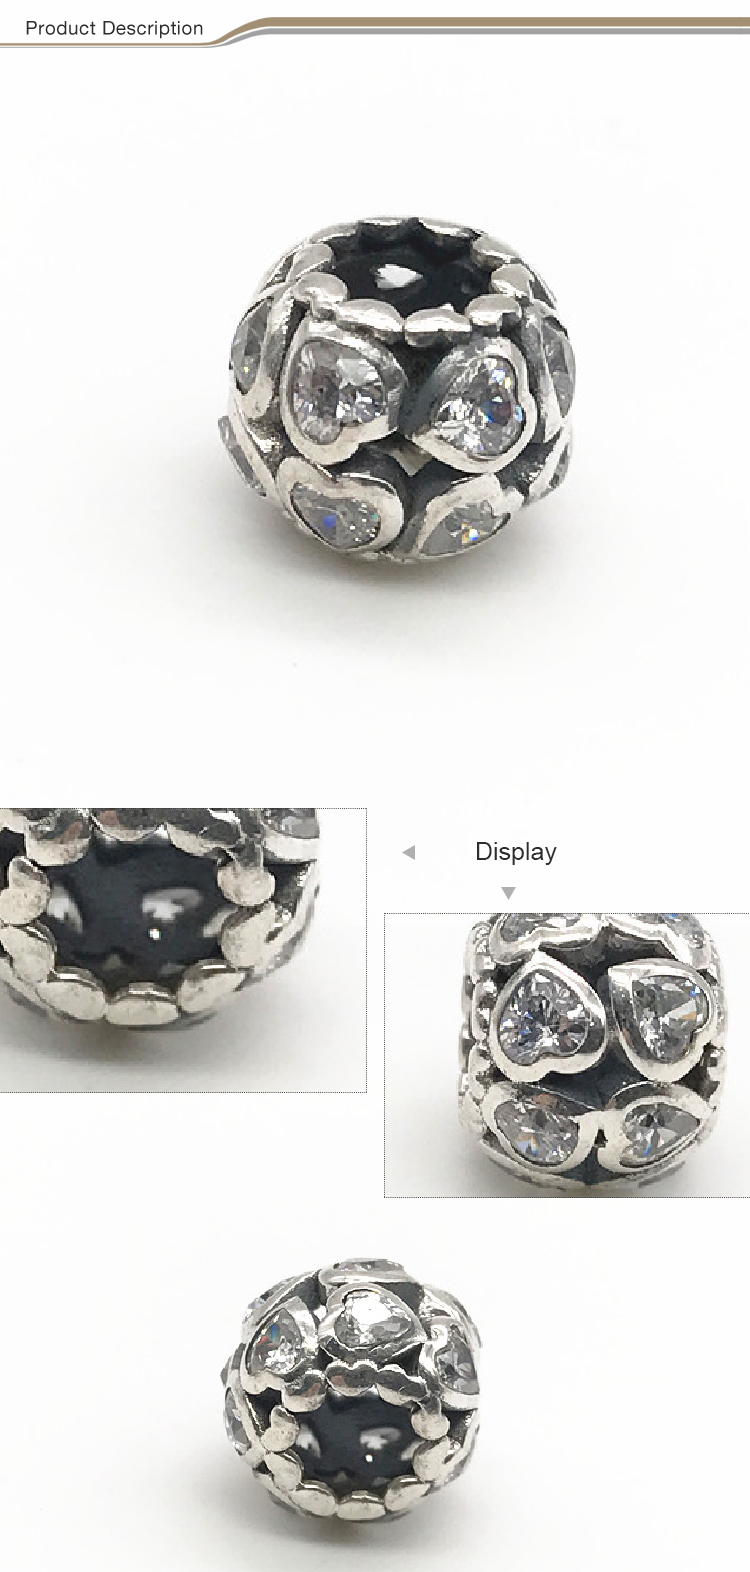 2019 new design DIY 925 sterling silver beads with zircon Love vintage beads for jewelry making